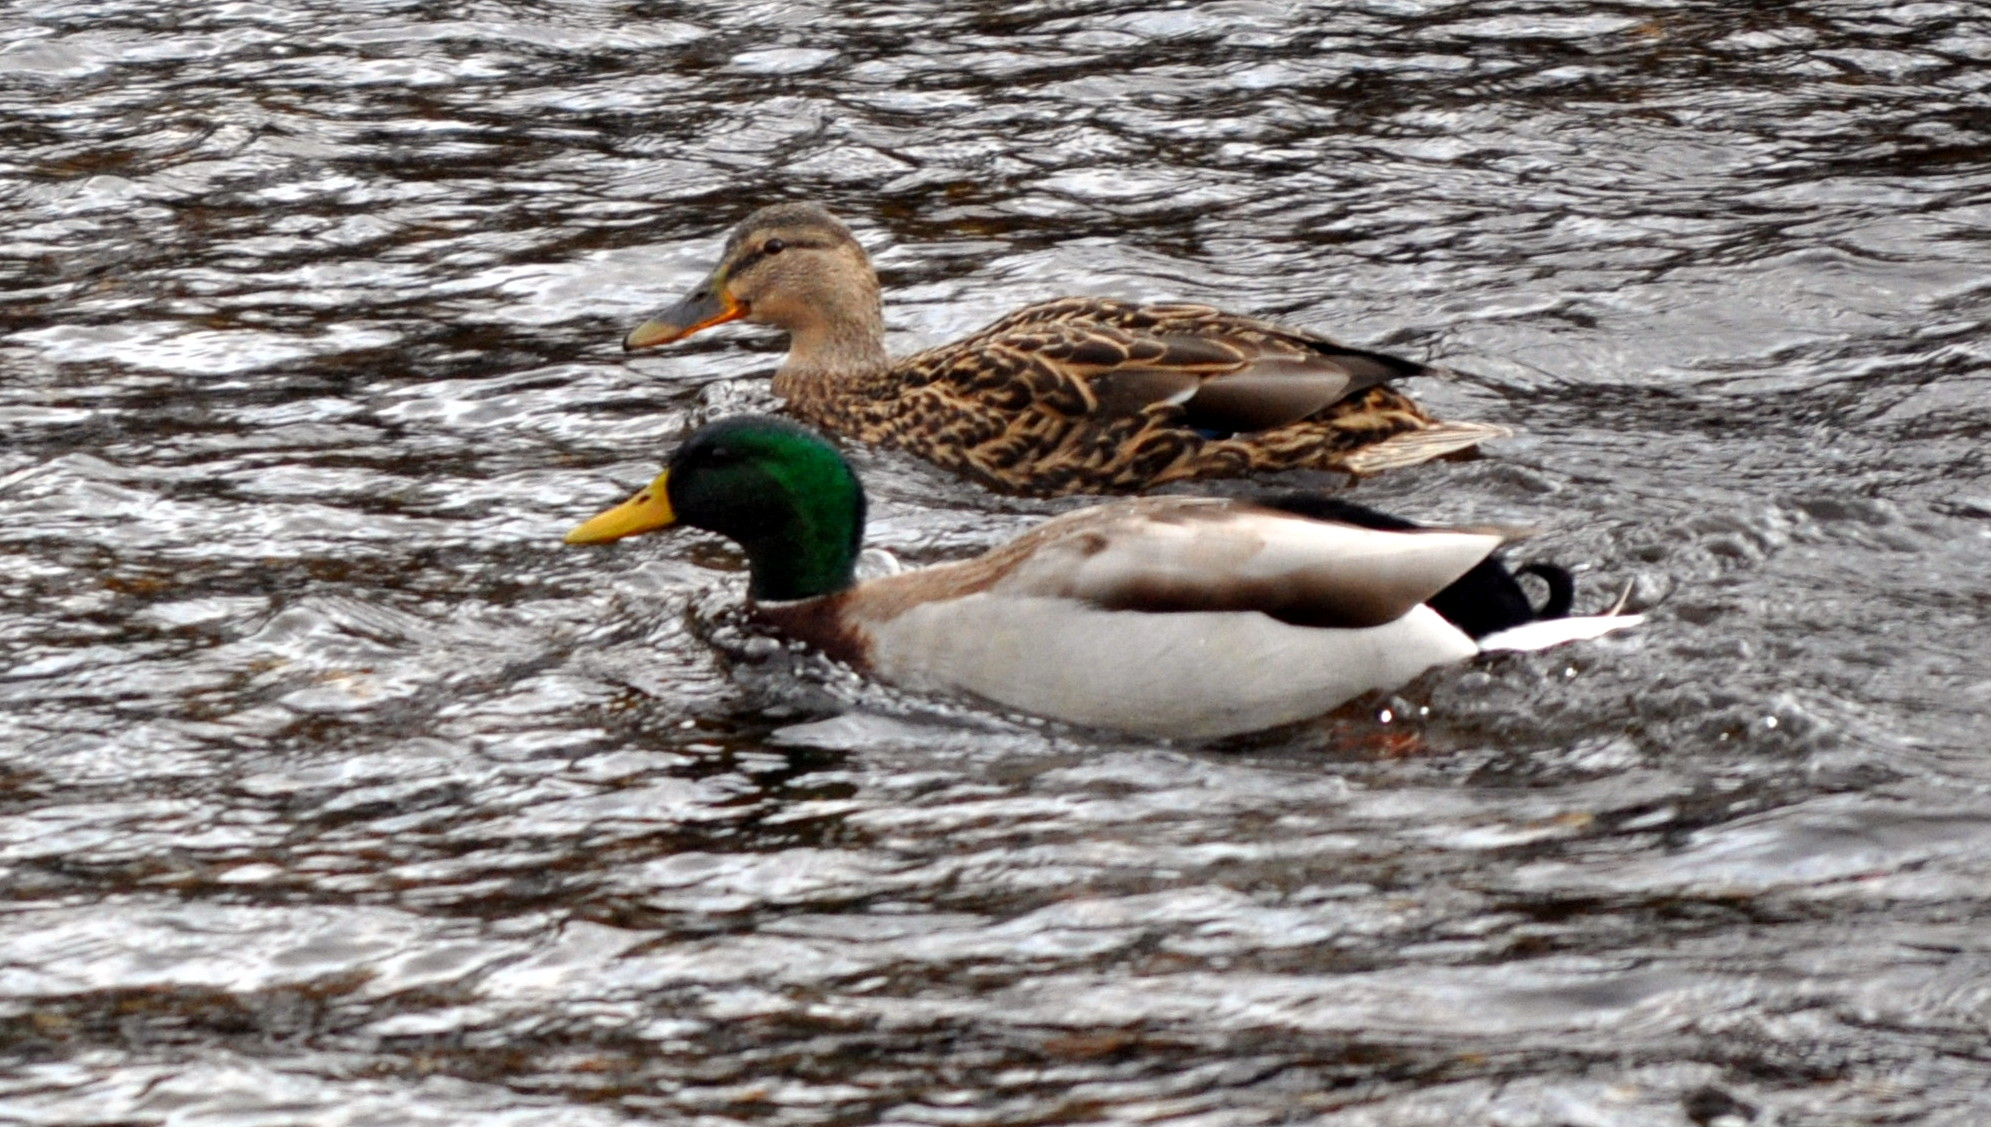 RAINING: BUT IT'S LIKE WATER OFF A DUCK'S BACK